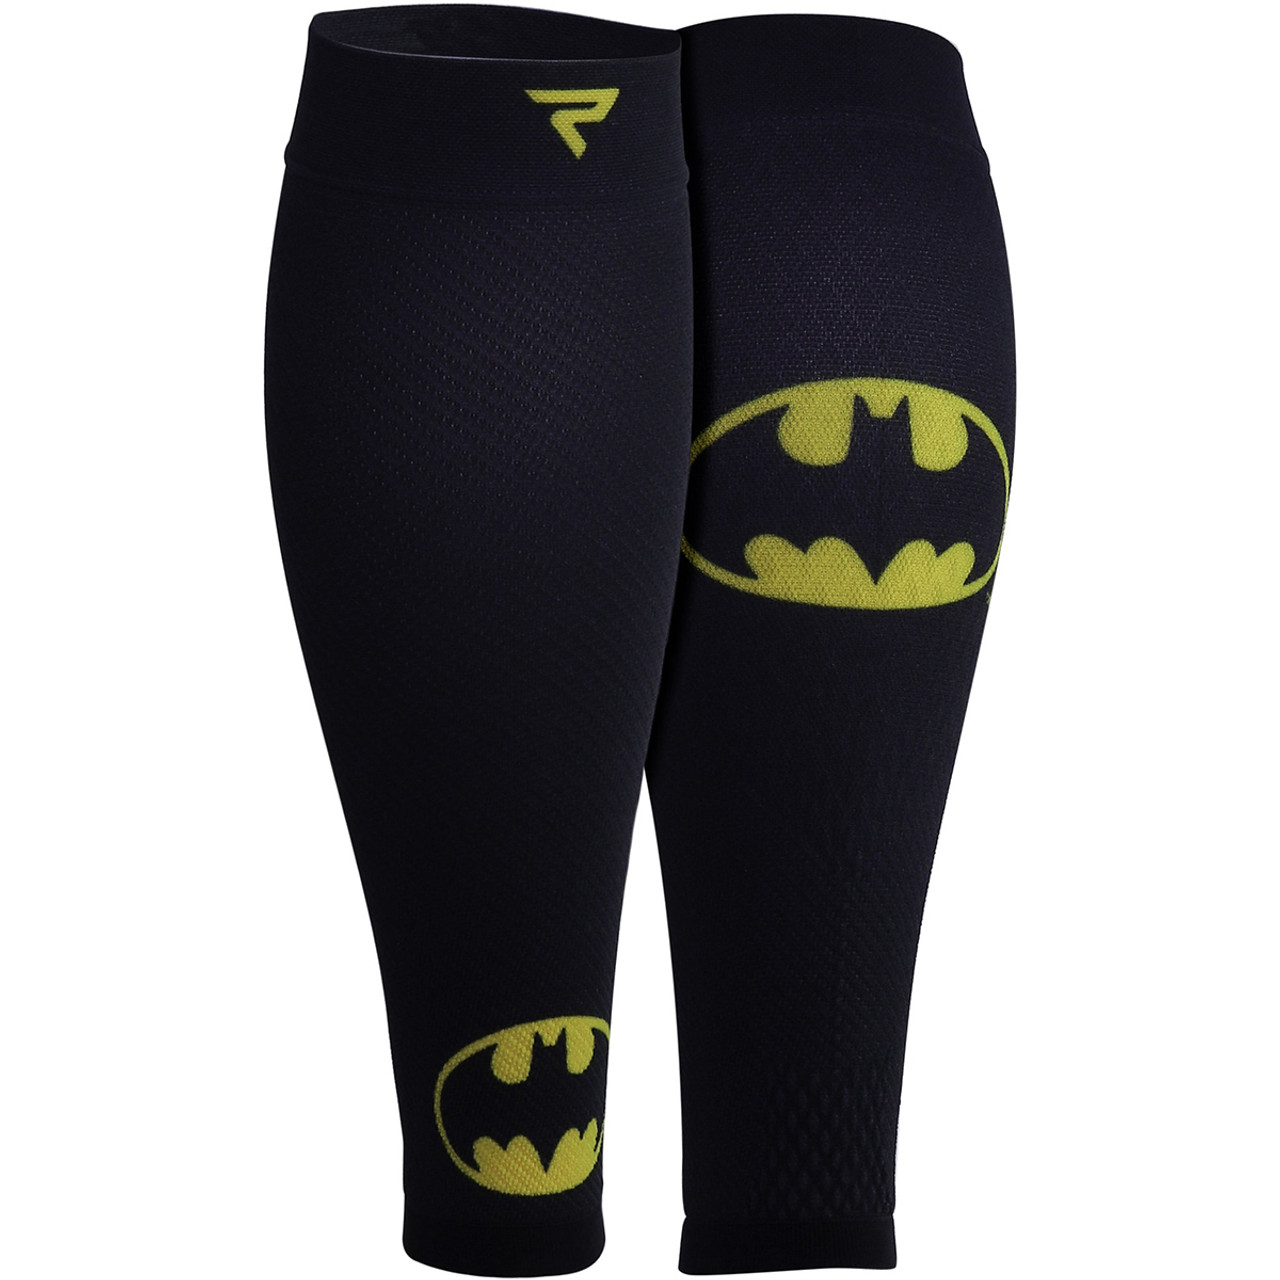 Performa Compression The Flash Calf Sleeves Support & Protective Gear Helps Shin Splints And Circulation